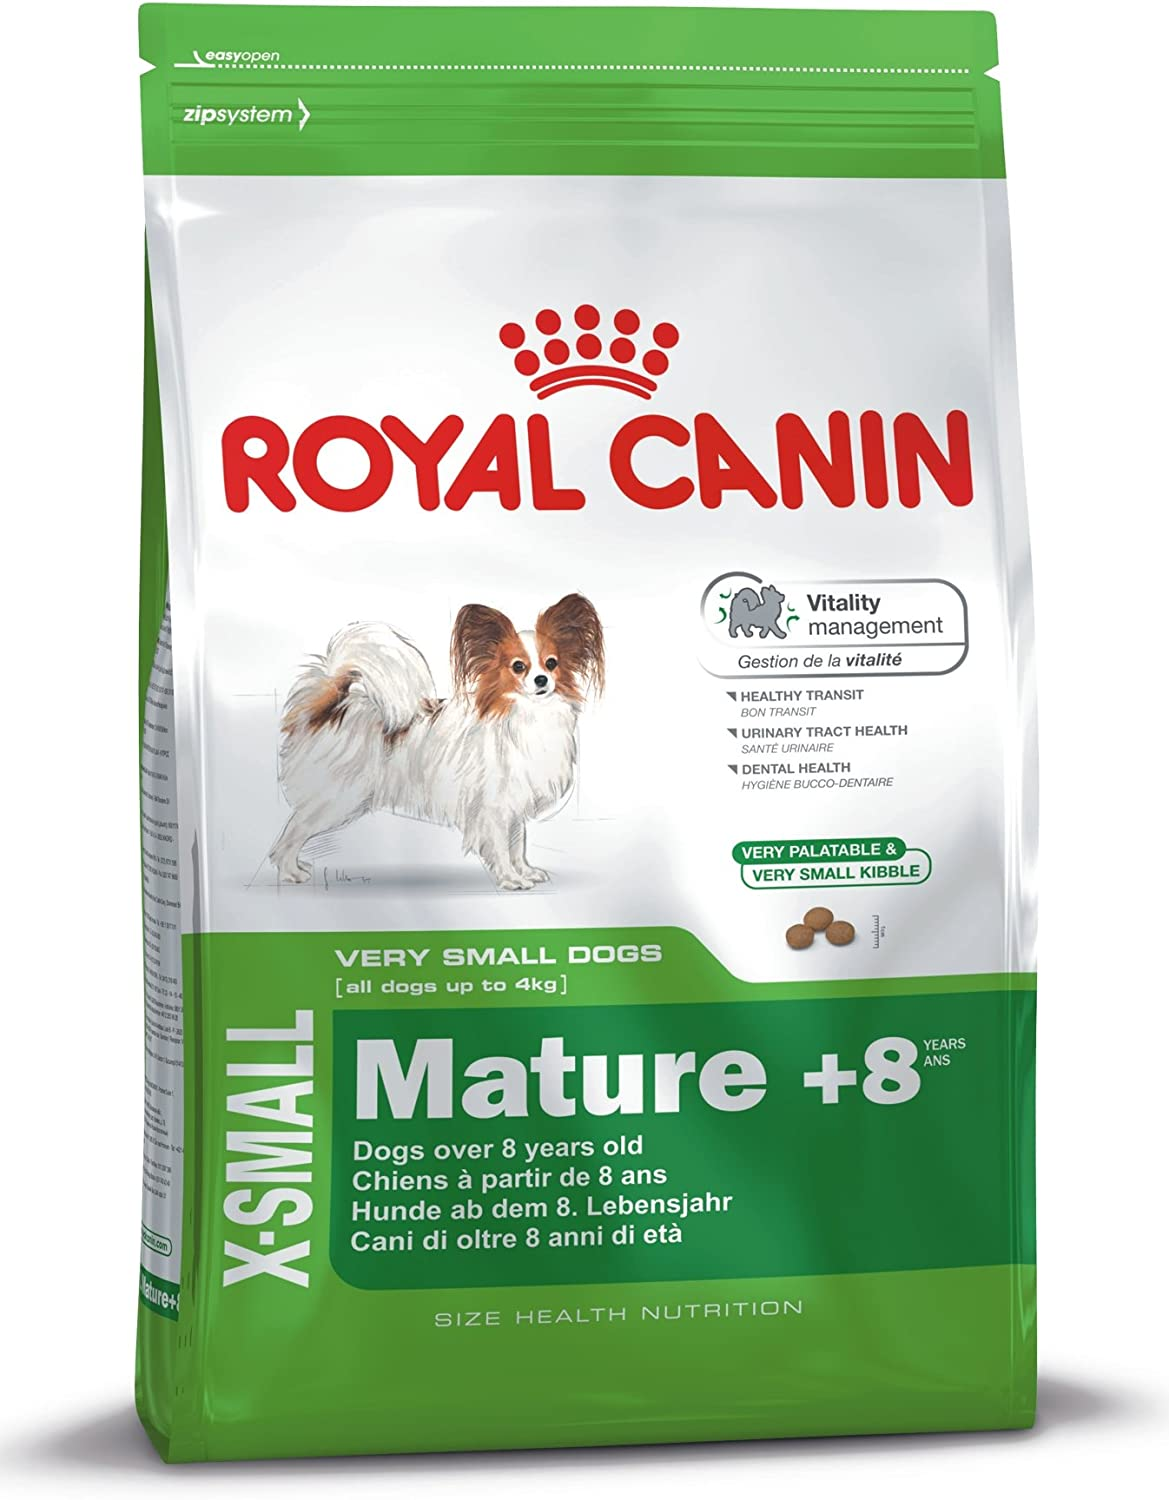 Royal canin X-small Mature +8 pienso para perros mini/toy